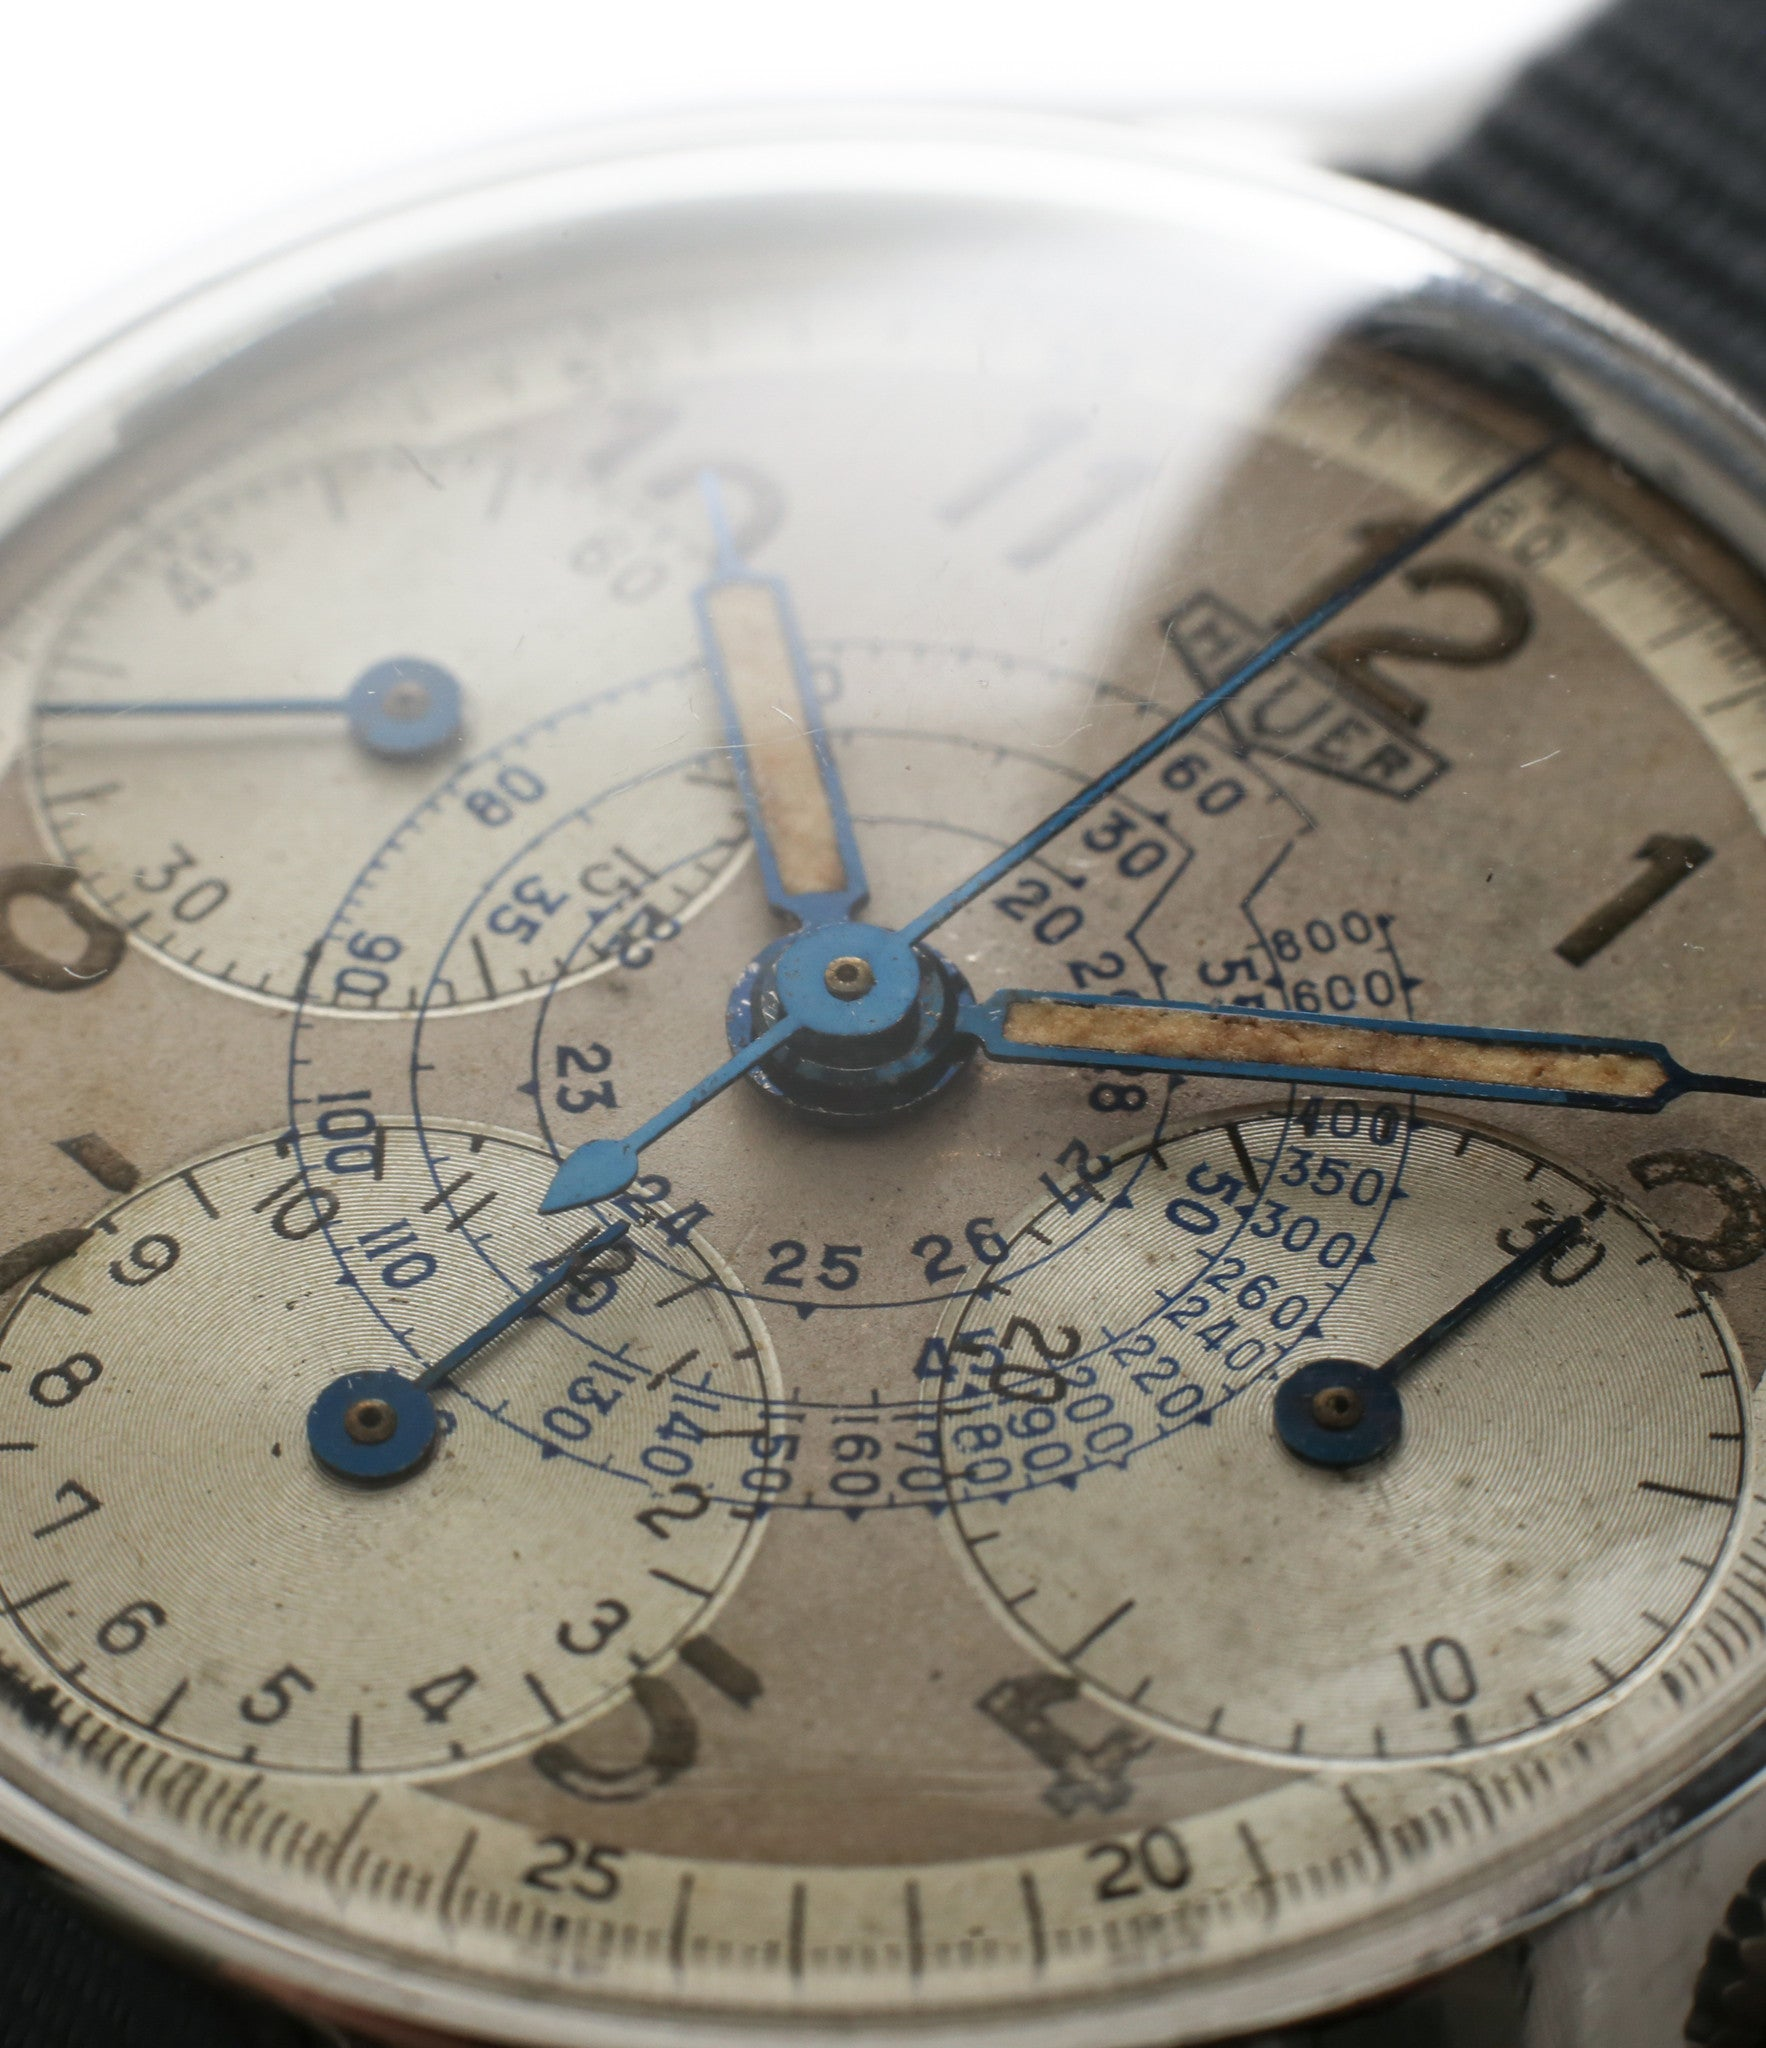 rare unrestored dial vintage Heuer Chronograph steel watch for sale online at A Collected Man London